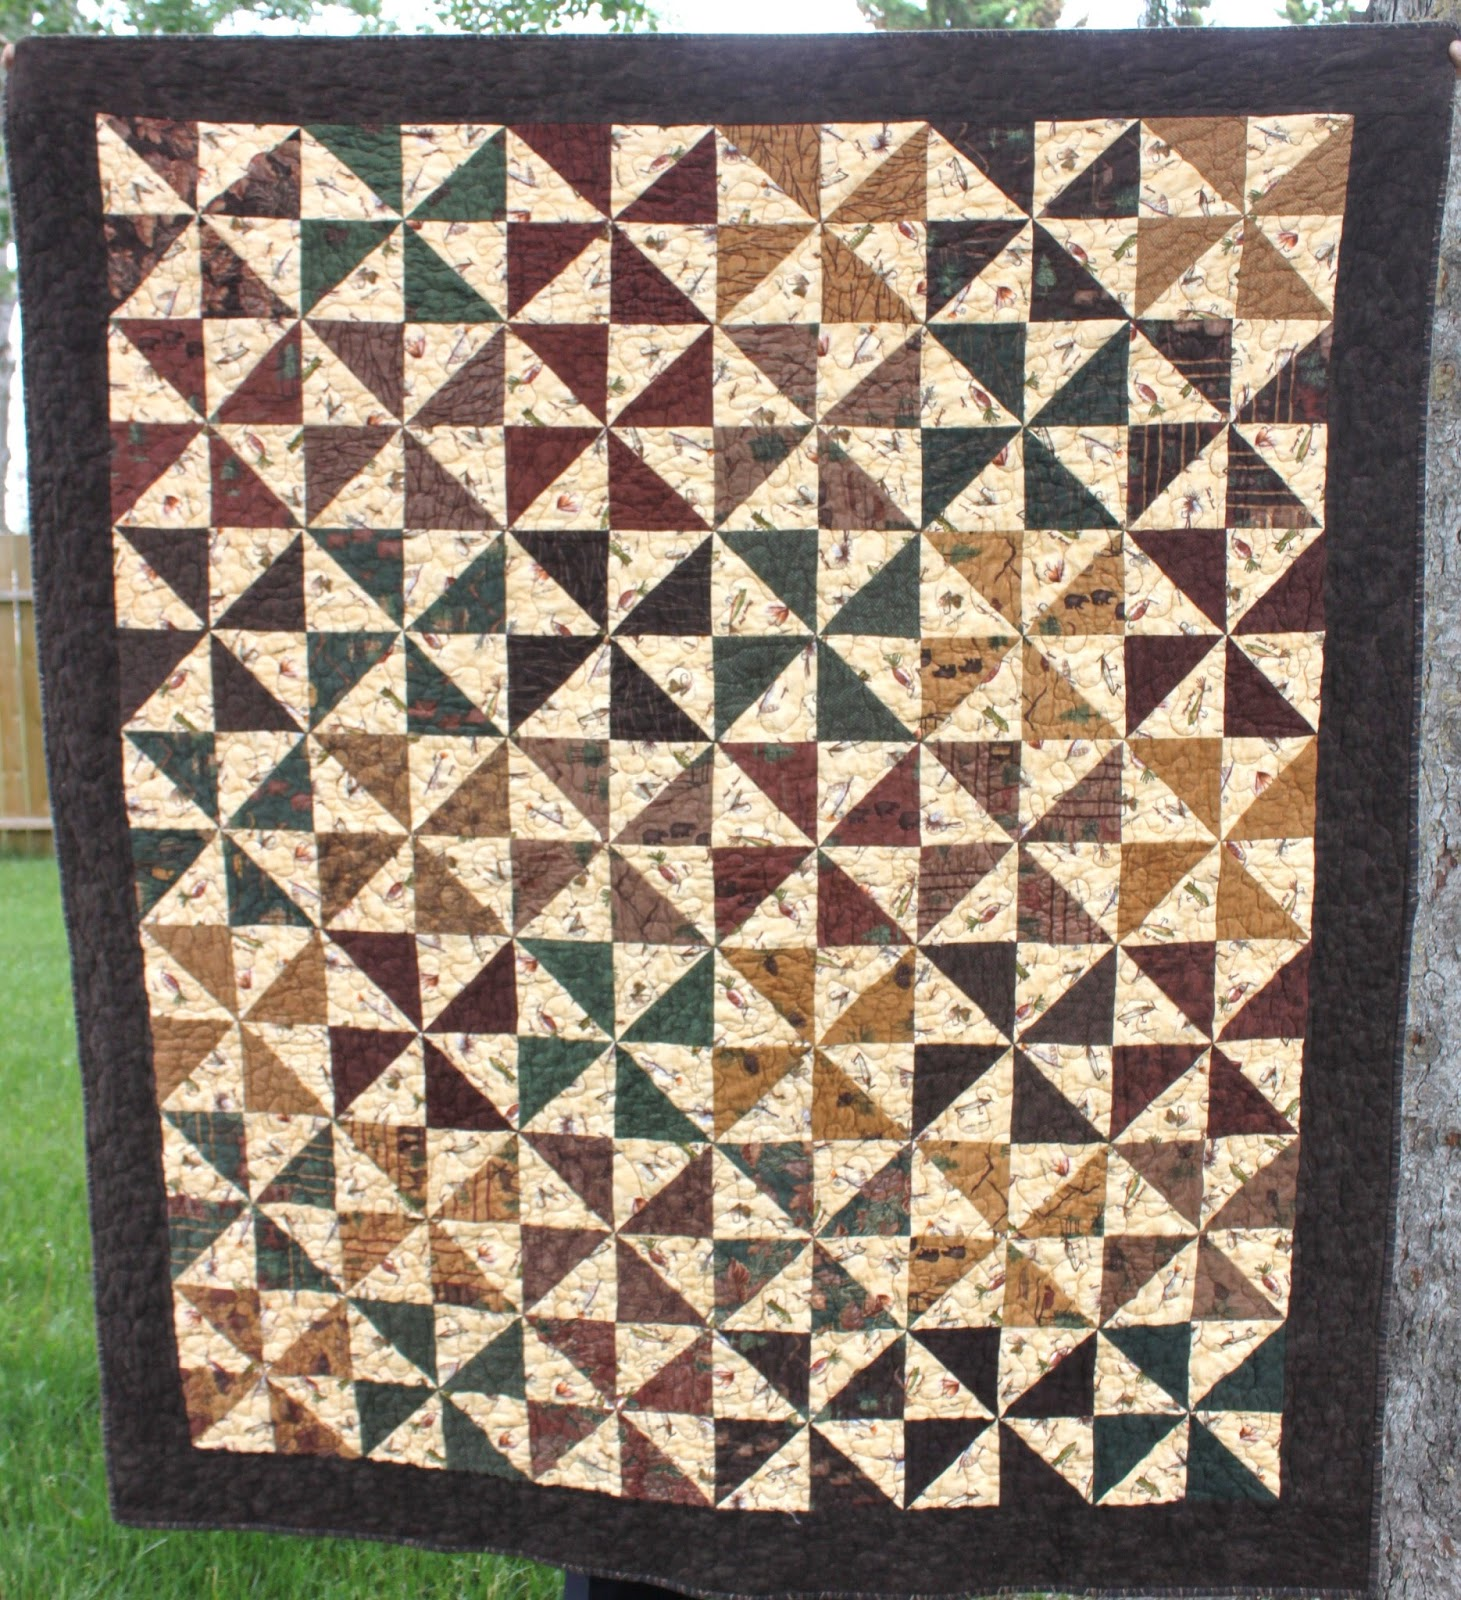 Daydreams of Quilts: Finished Father's Day Quilt for Dad : st albert quilt shop - Adamdwight.com